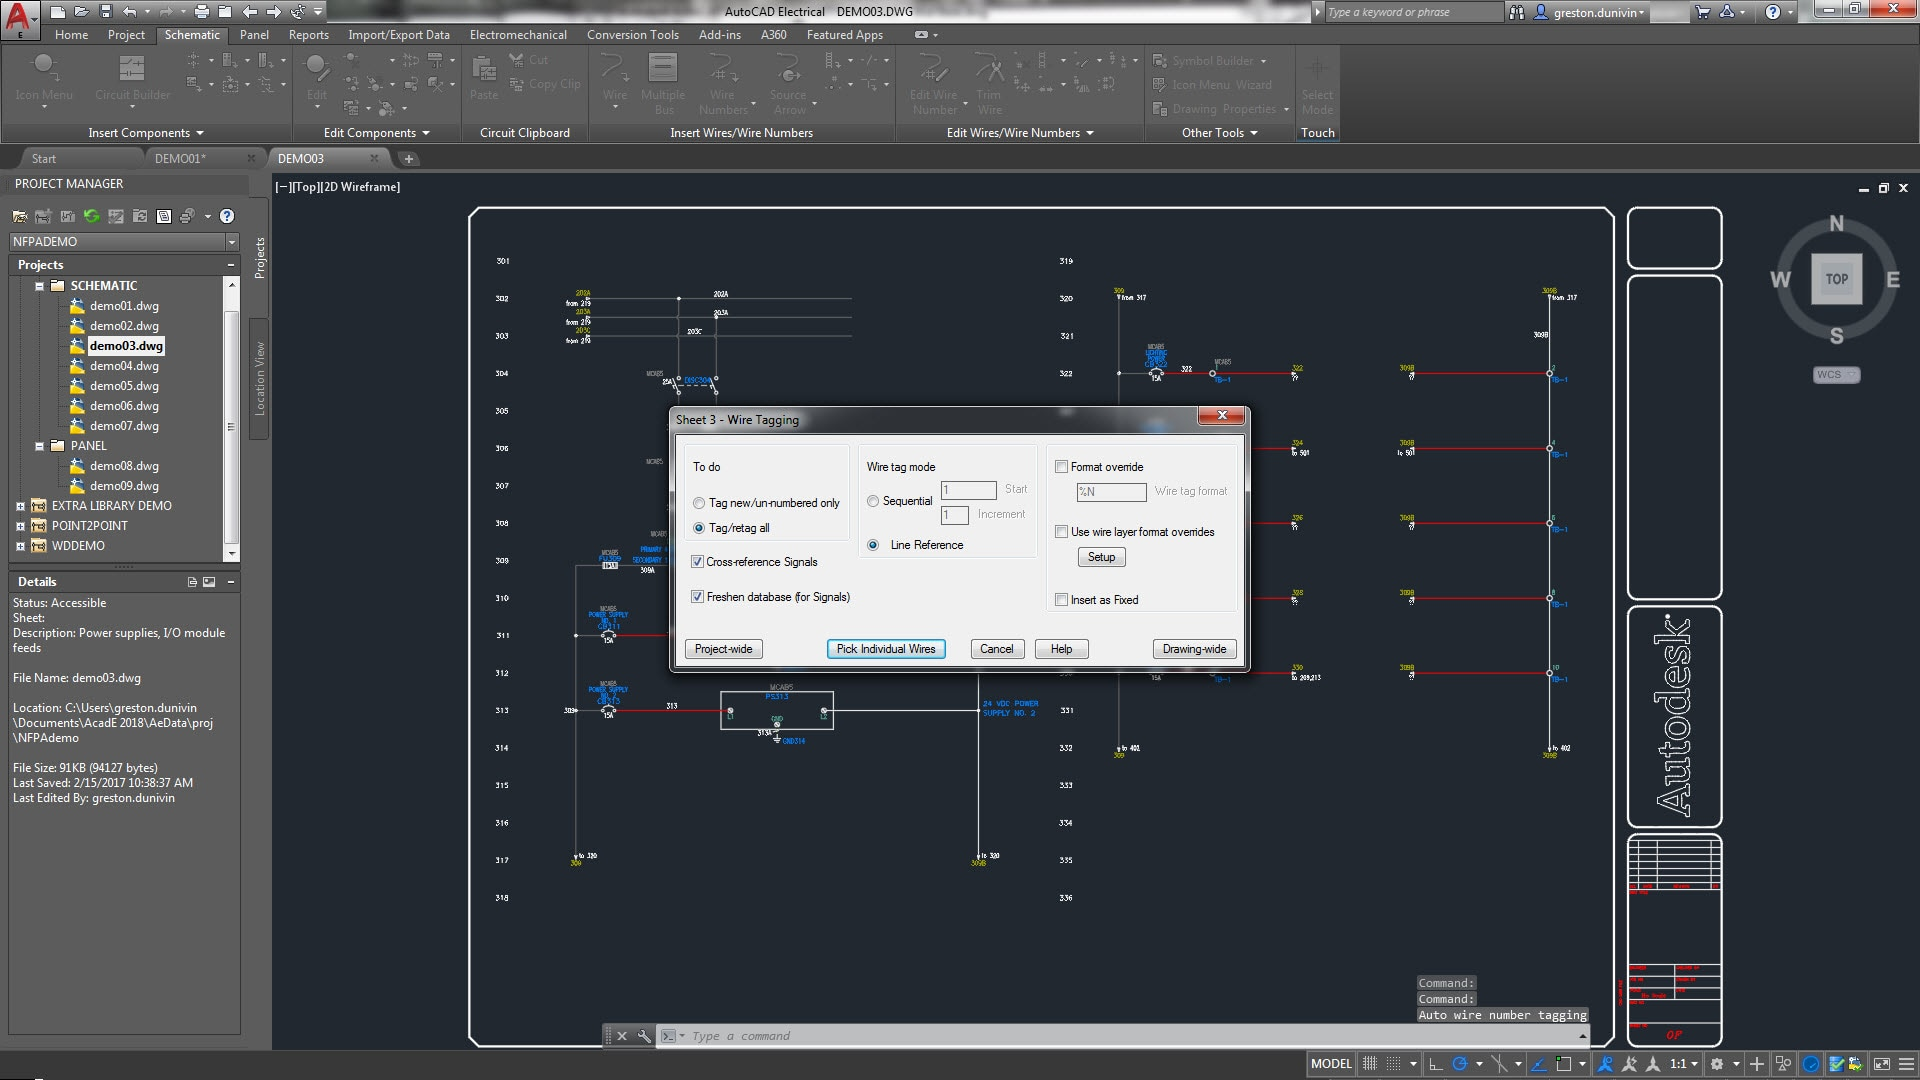 Autocad Electrical Toolset Design Software Automotive Wiring System Diagram Schematic